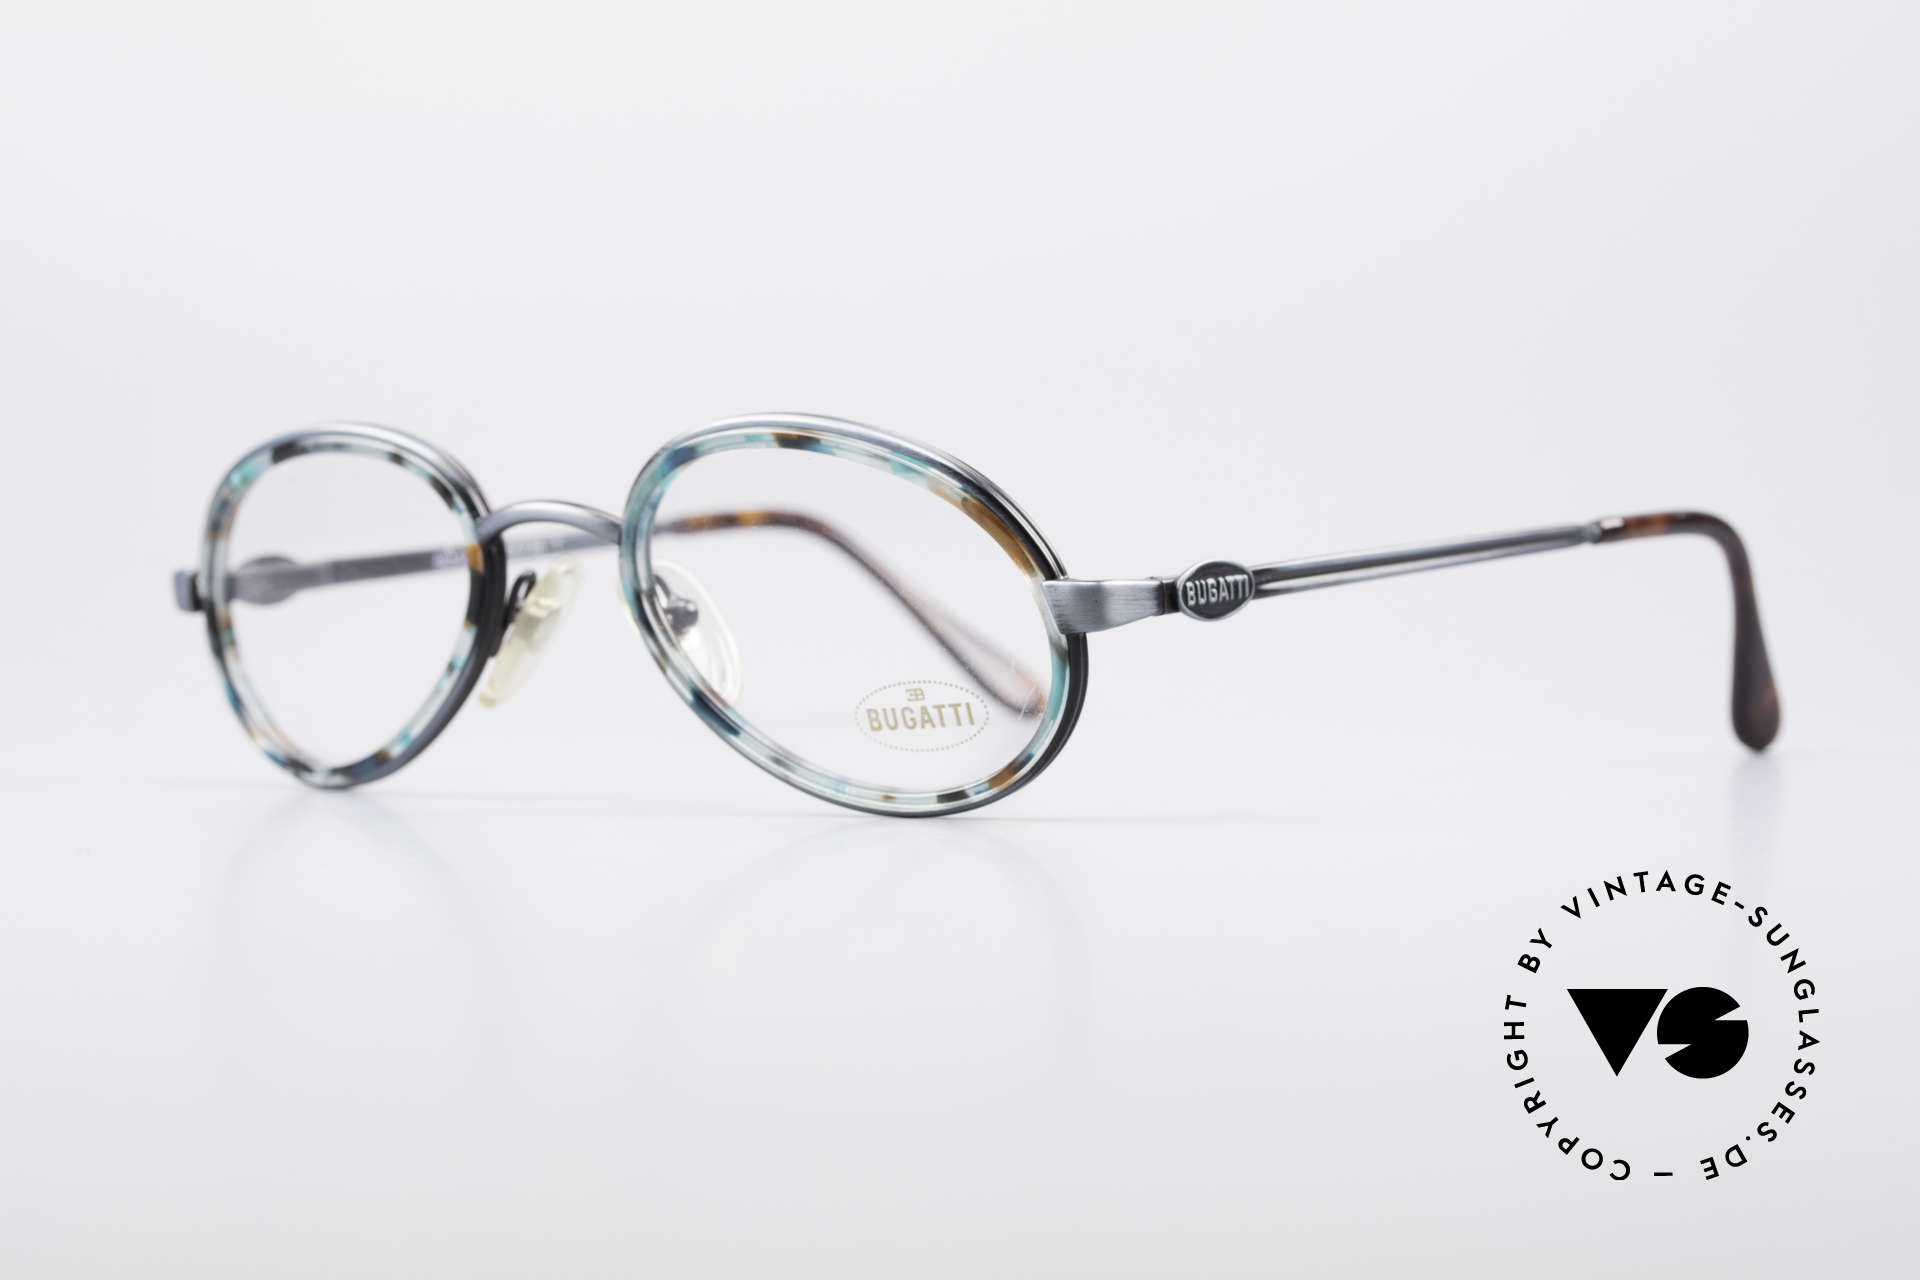 Bugatti 05728T 90's Men's Eyeglasses, top quality & 1. class wearing comfort (spring hinges), Made for Men